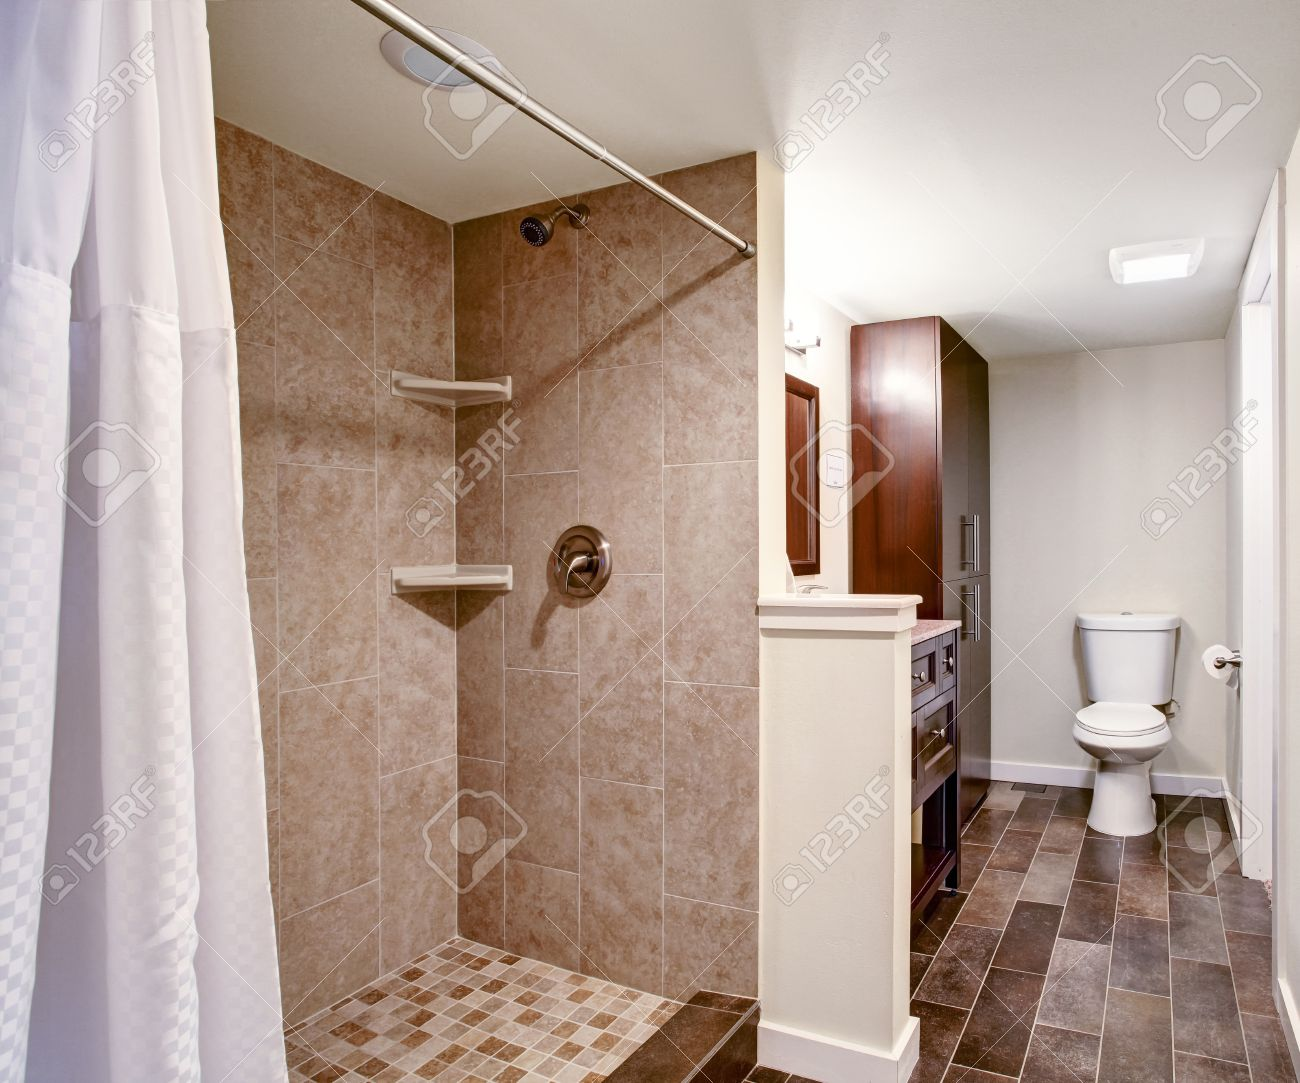 White Bathroom With Mocha Tile Wall Trim And Tile Floor. View ...